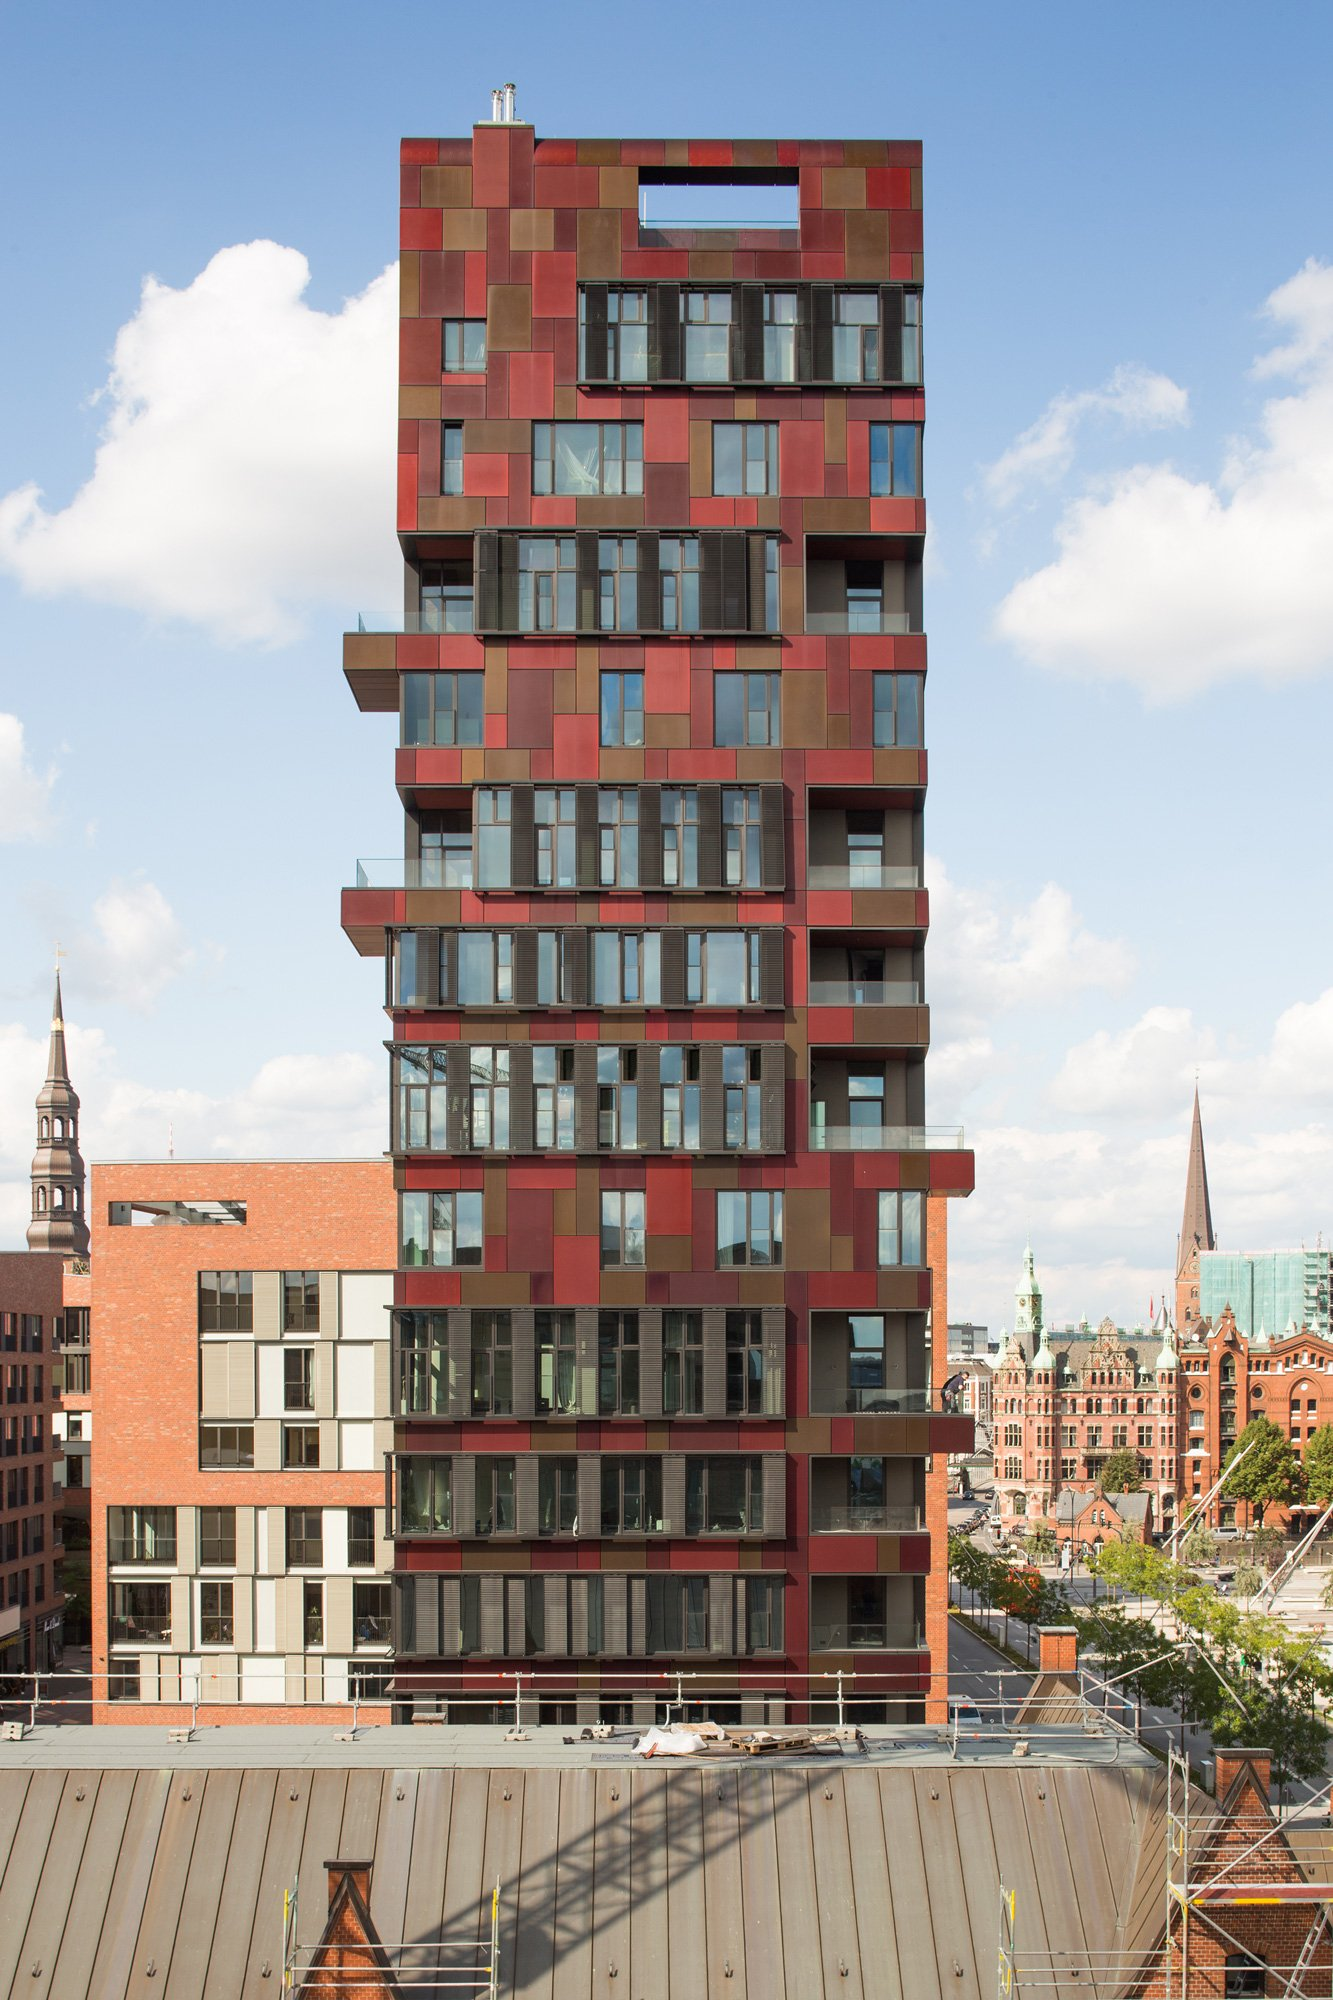 Cinnamon Tower © Christian Richters